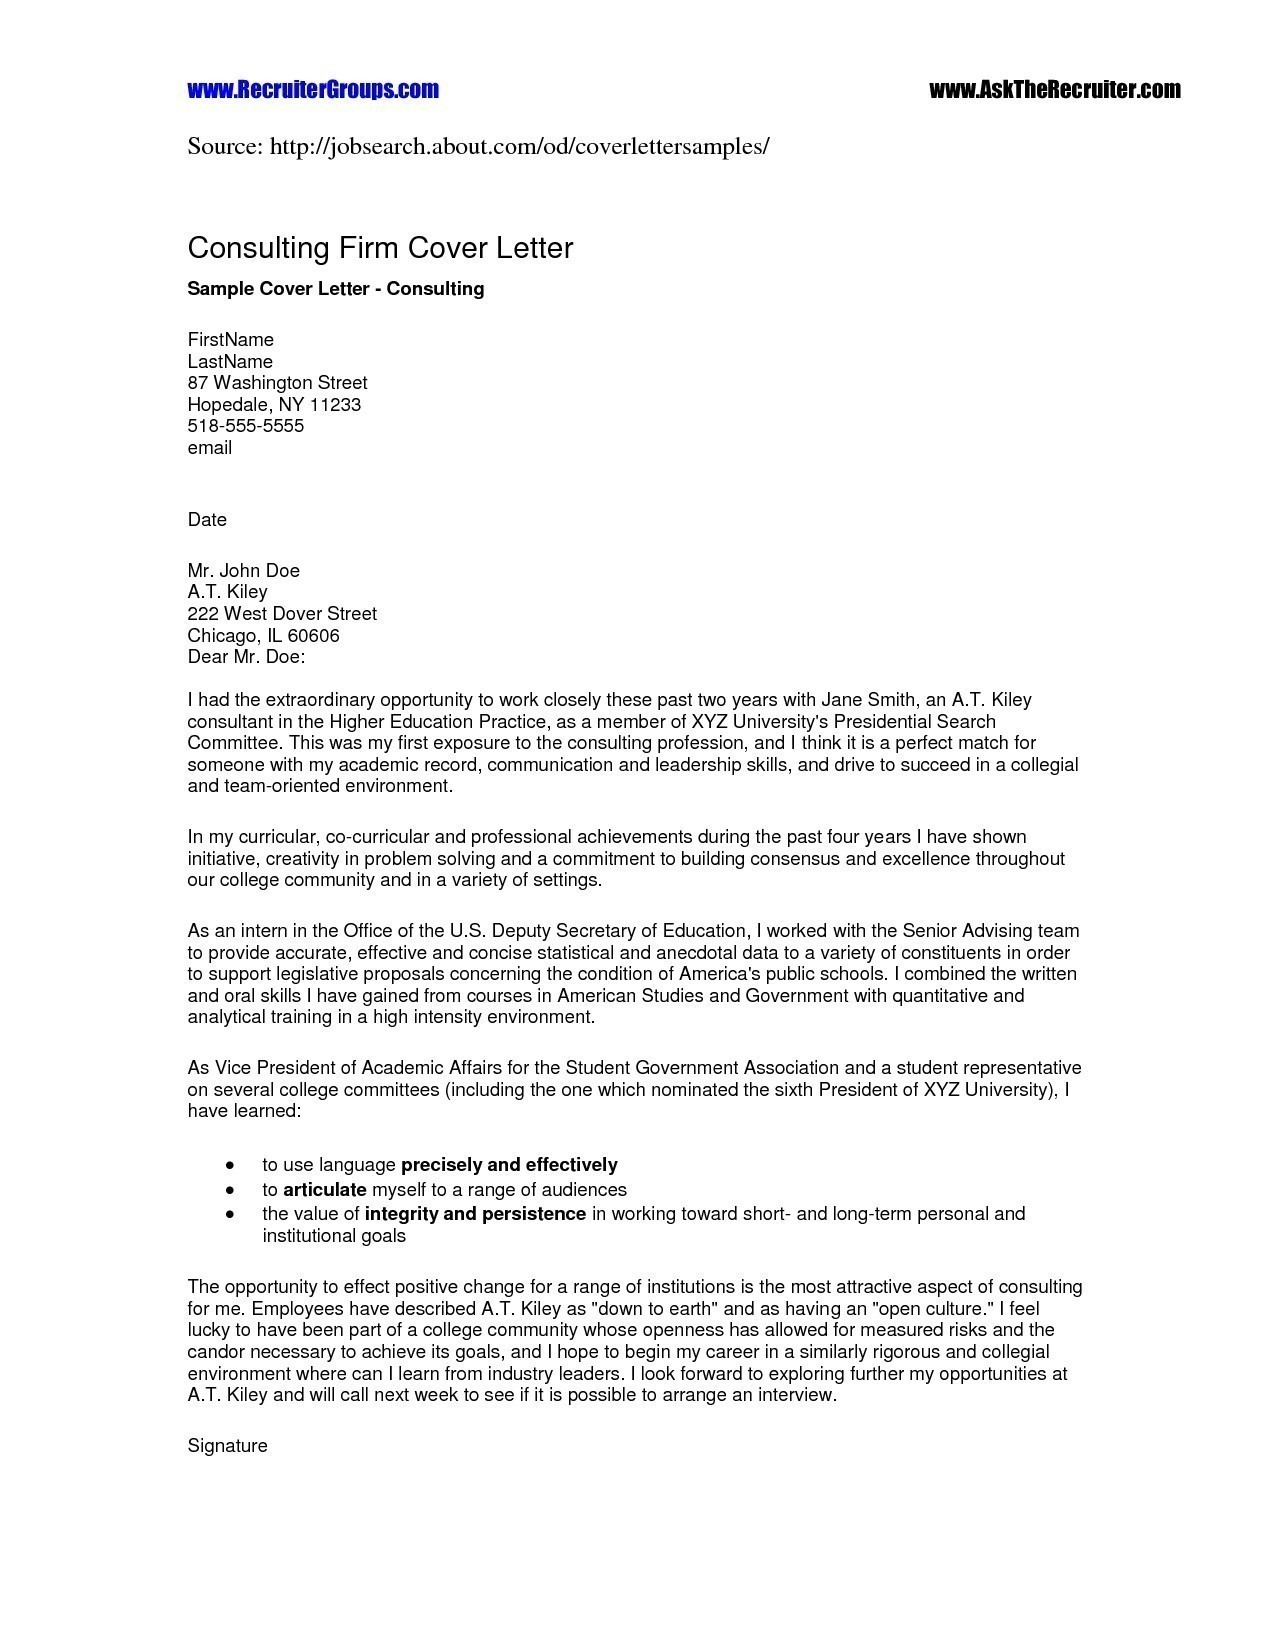 Sample Offer Letter Template - How to Write Job Fer Letter Fresh Job Fer Letter Sample Best Job